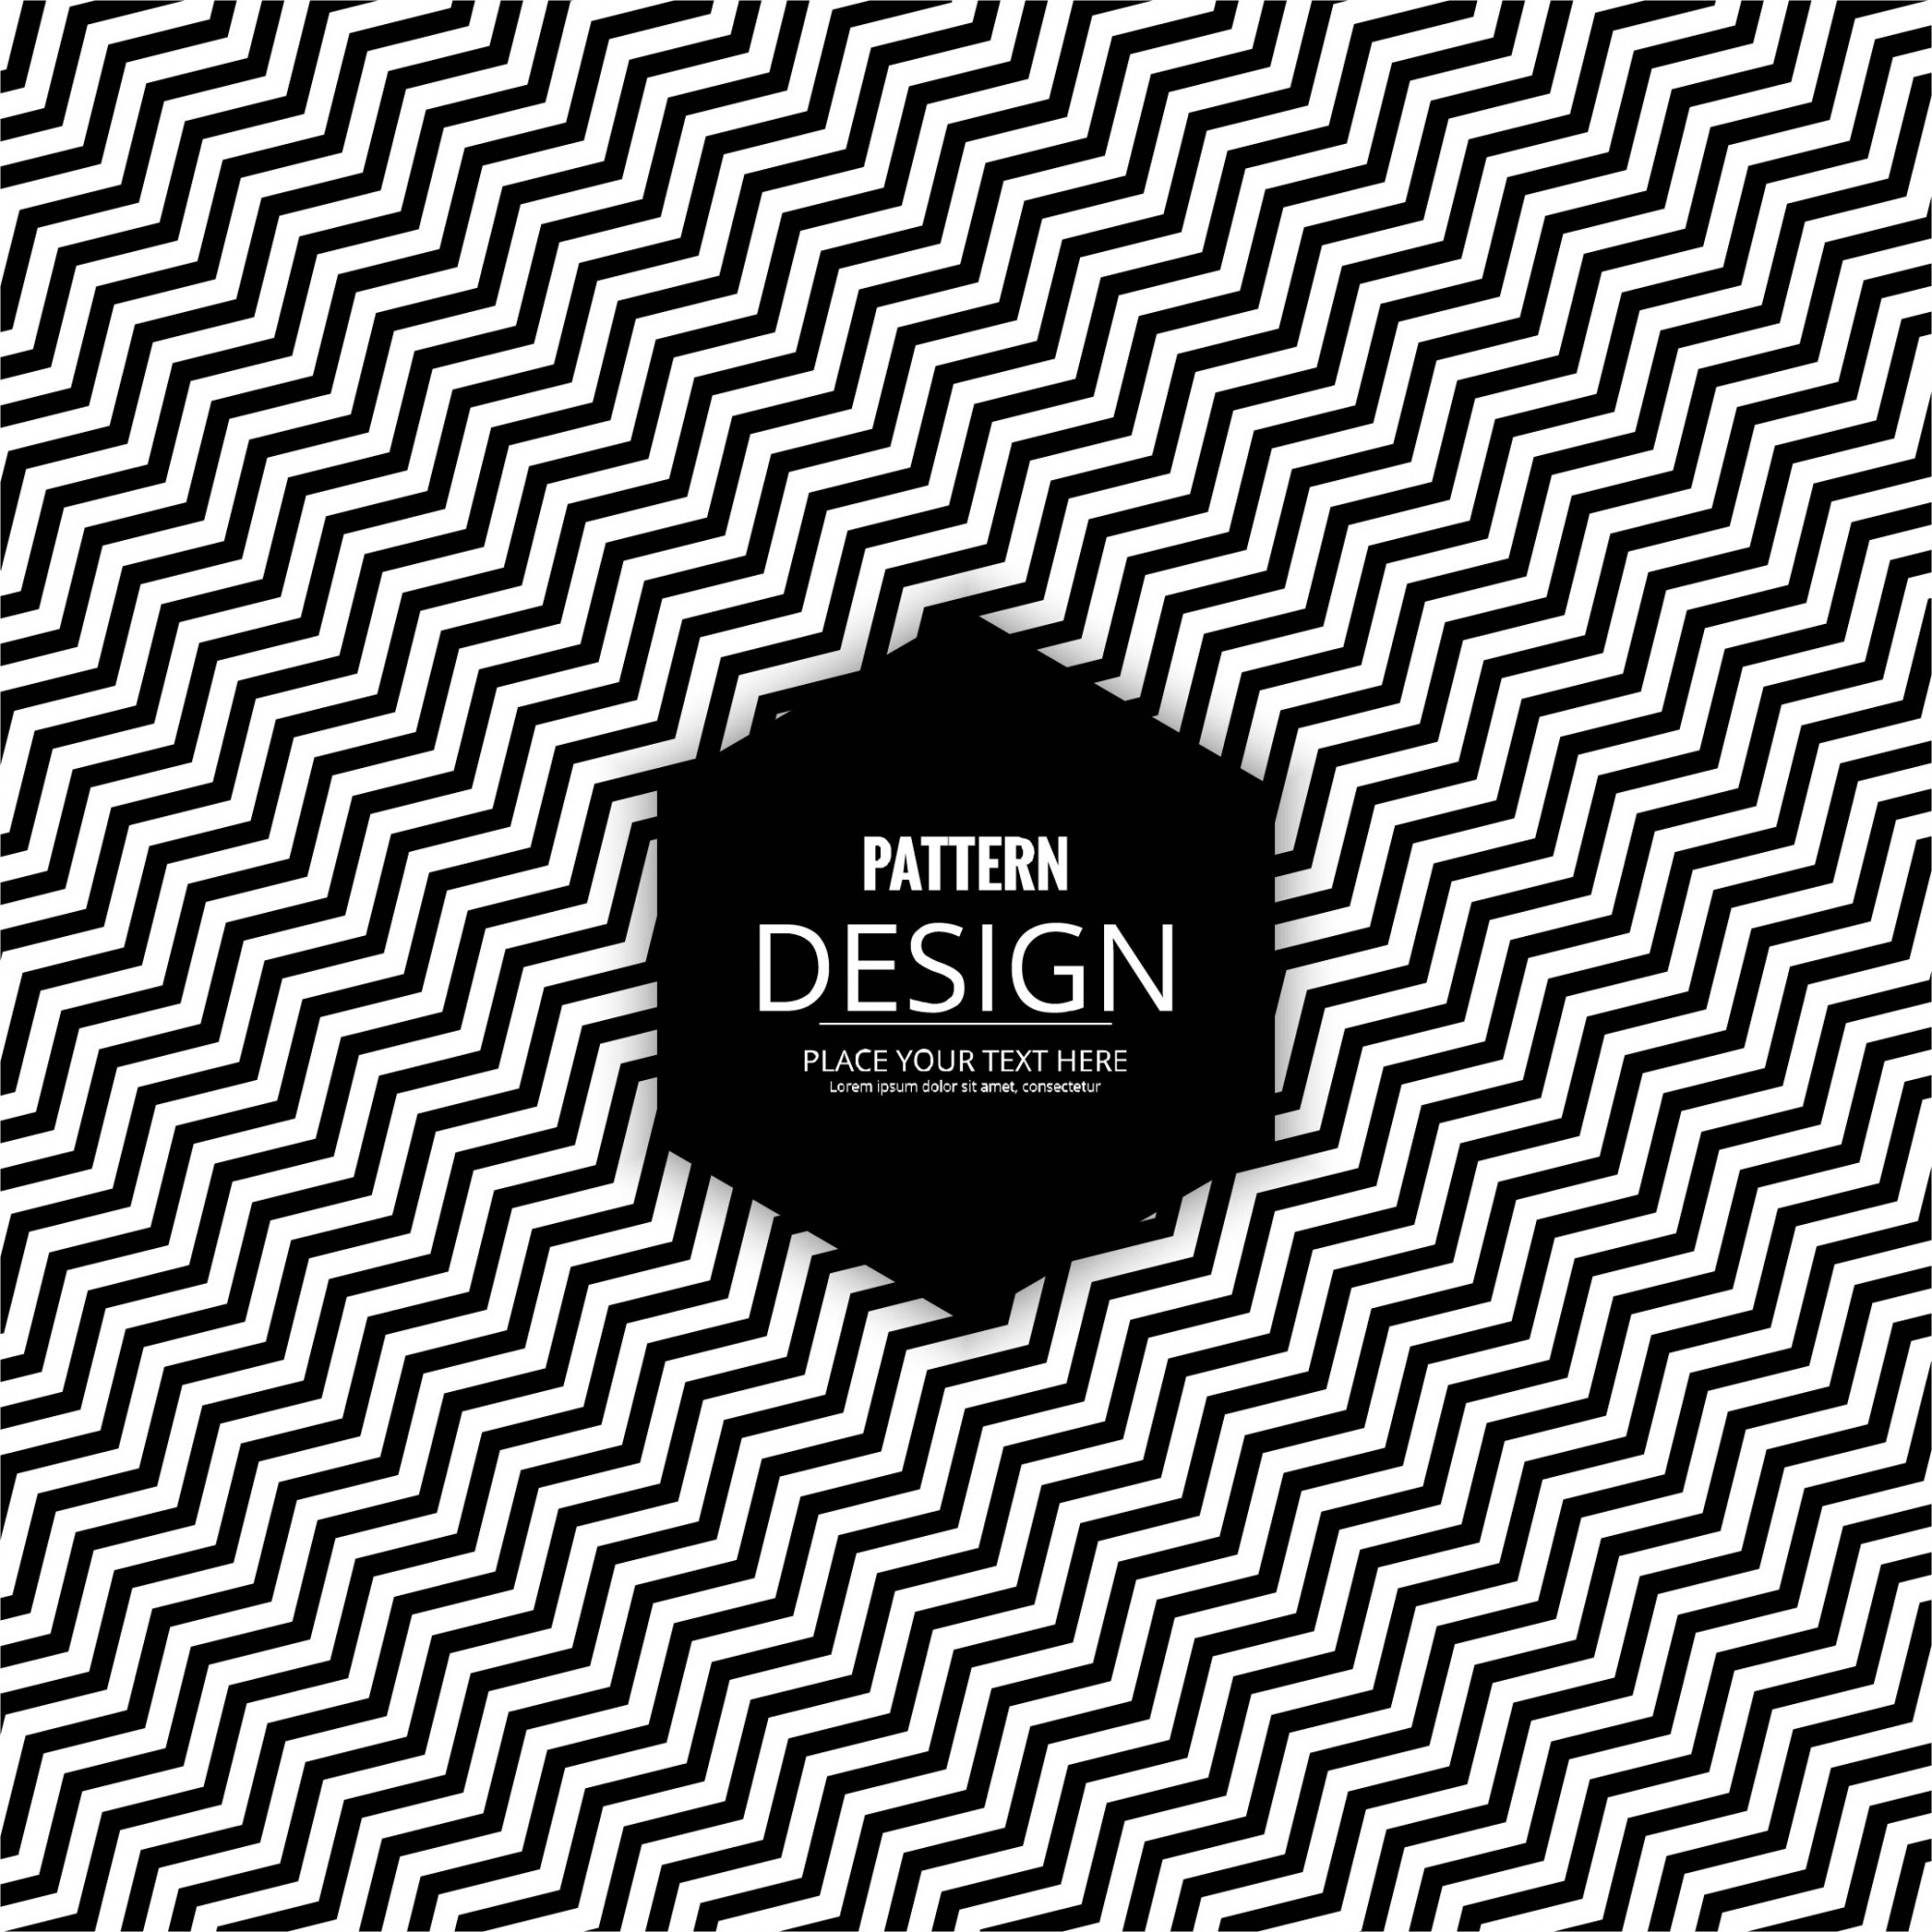 Black and white pattern with zig zag stripes